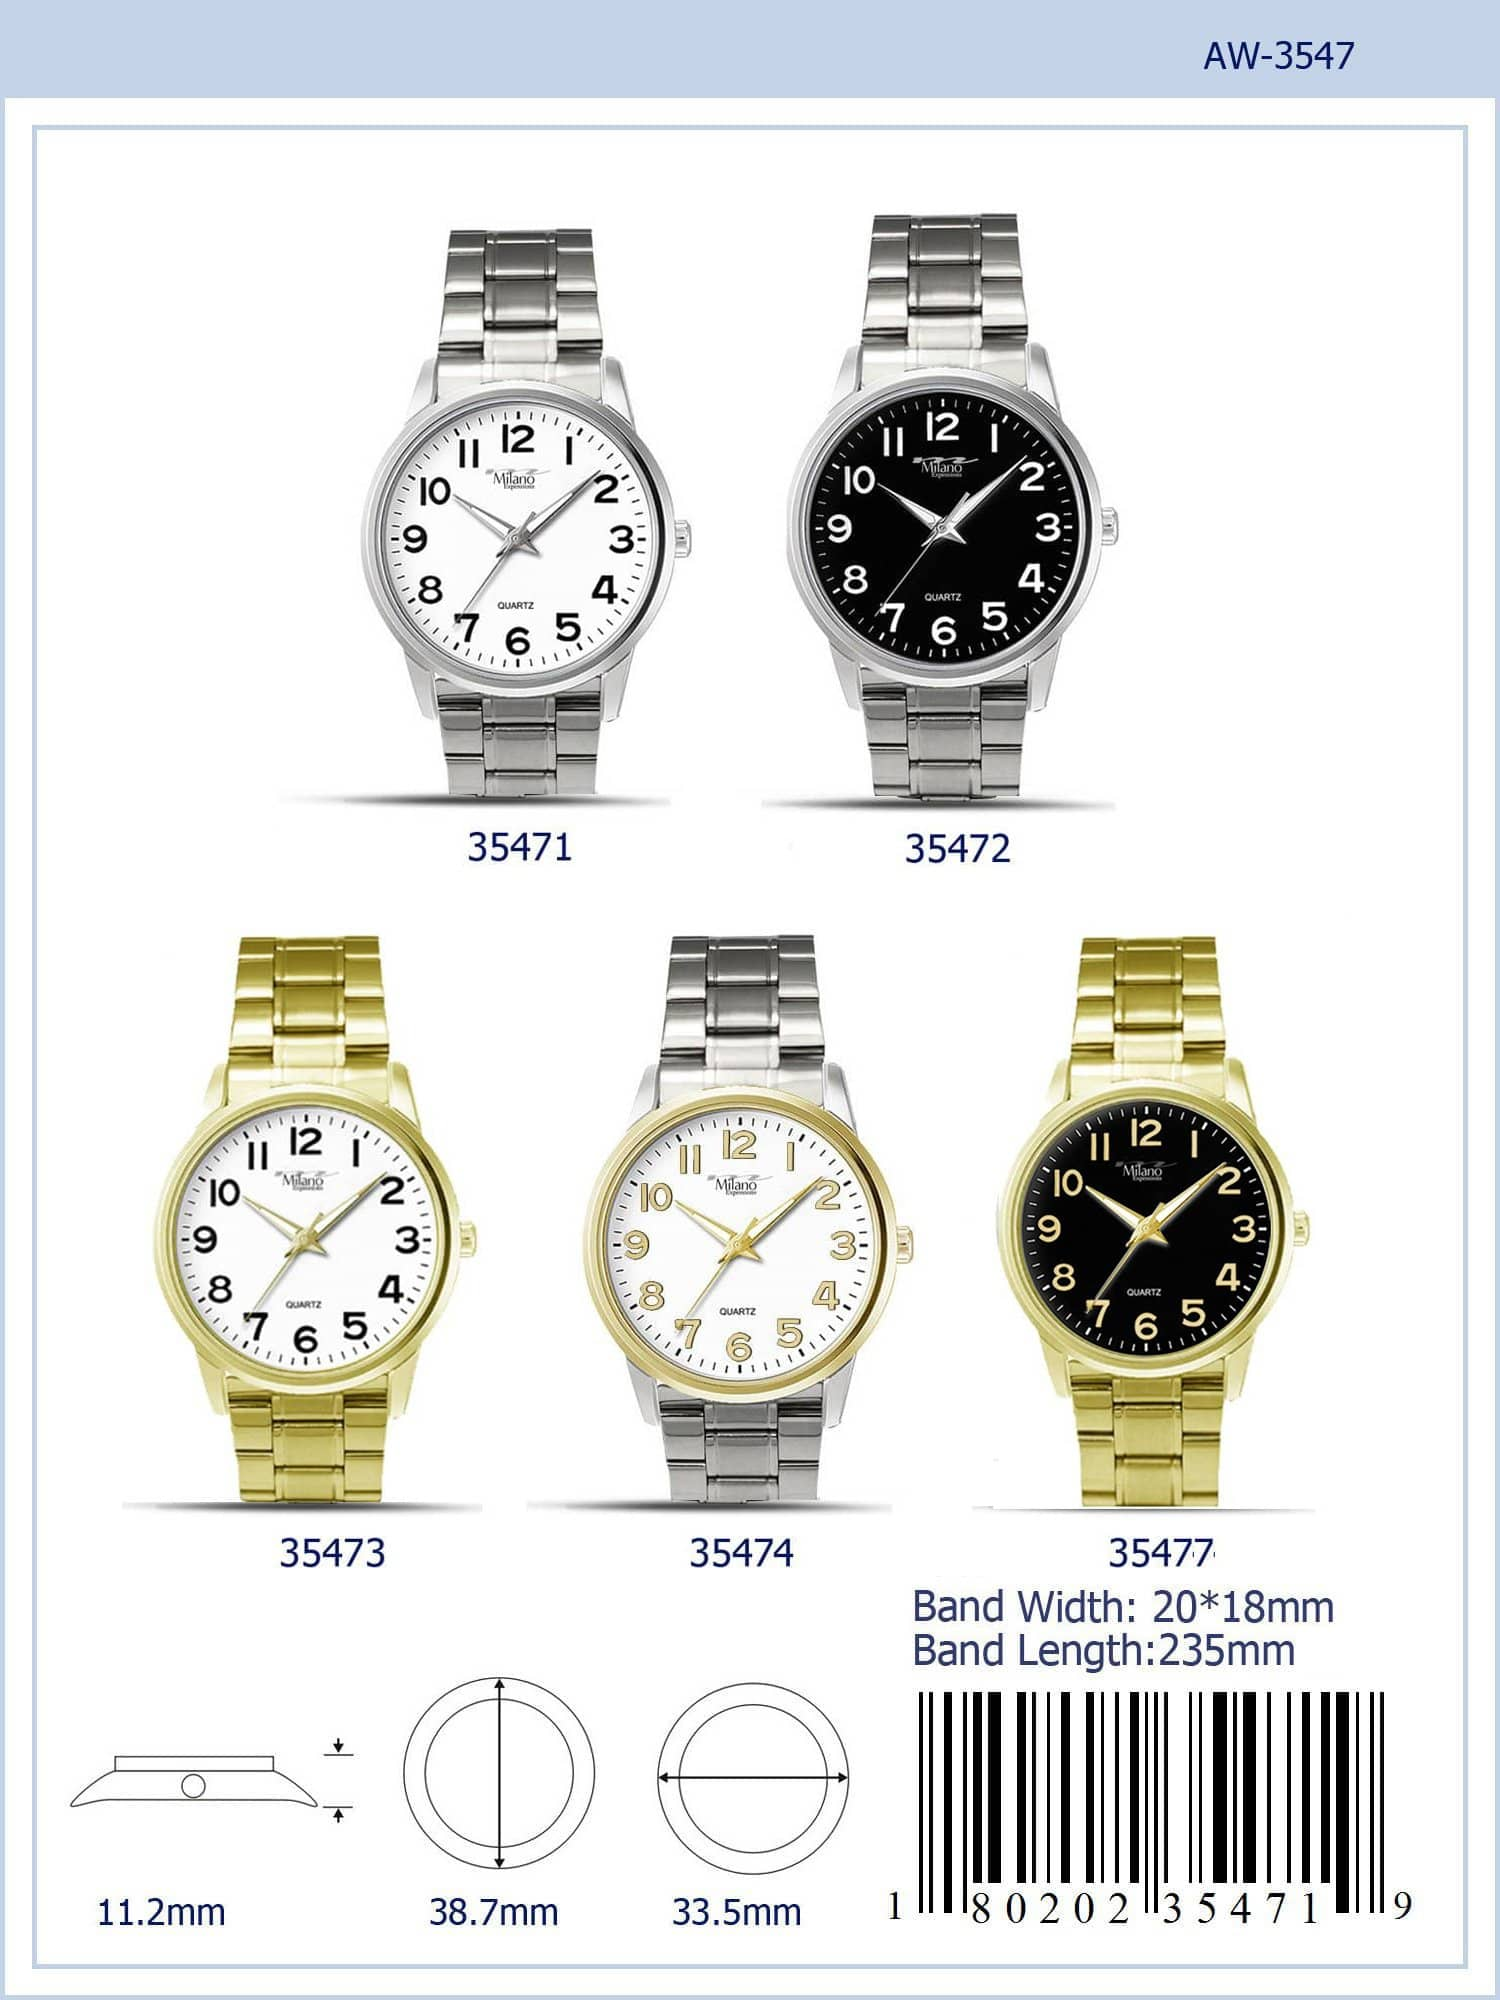 3547 - Metal Band Watch